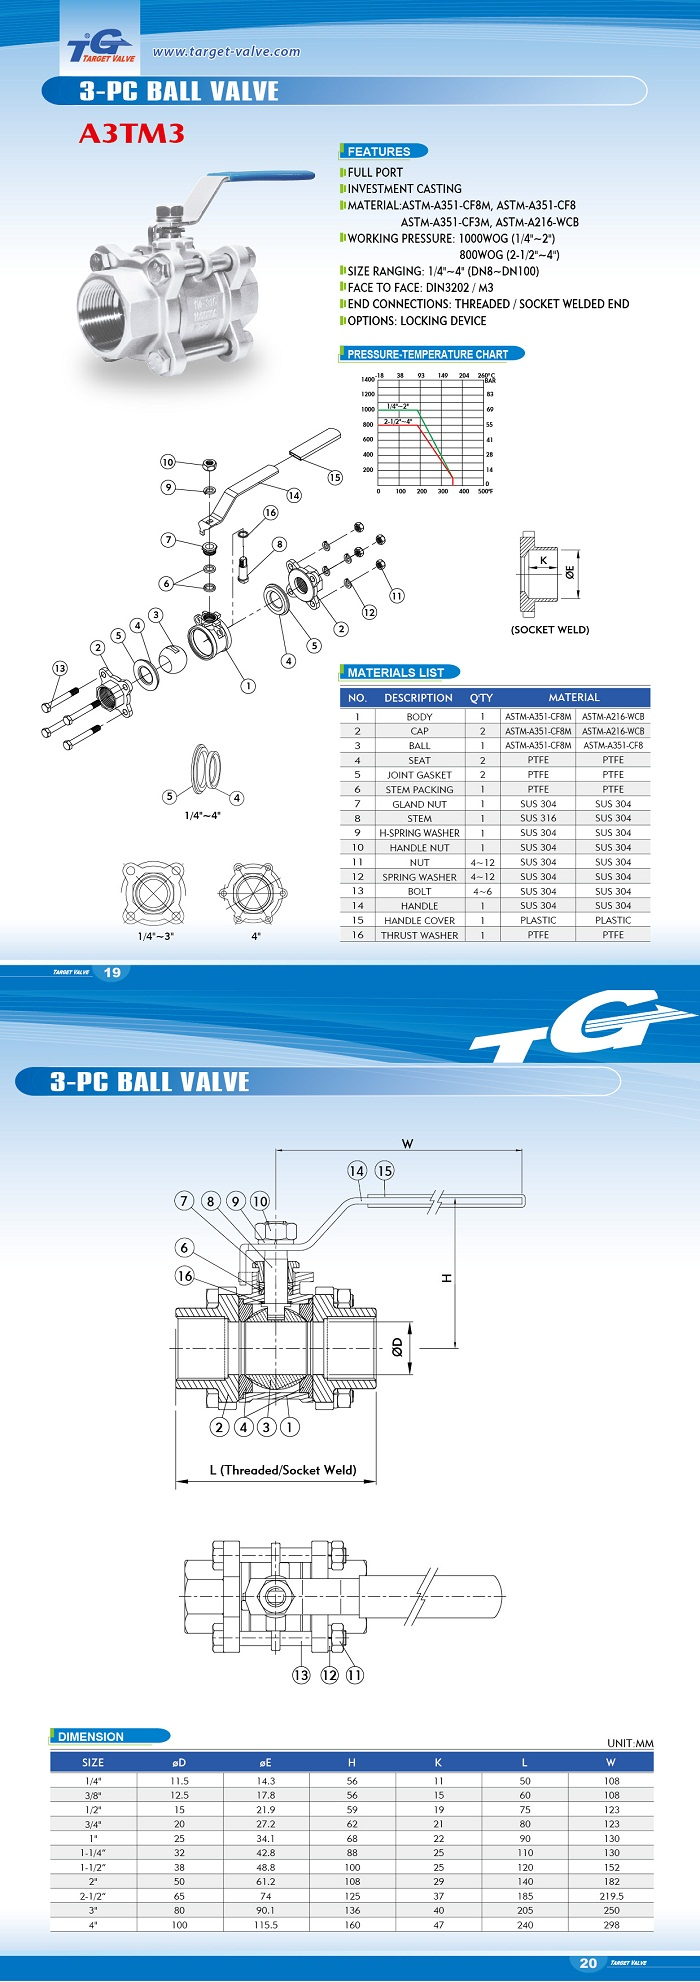 3 PC BALL VALVE M3 TYPE - A3TM3